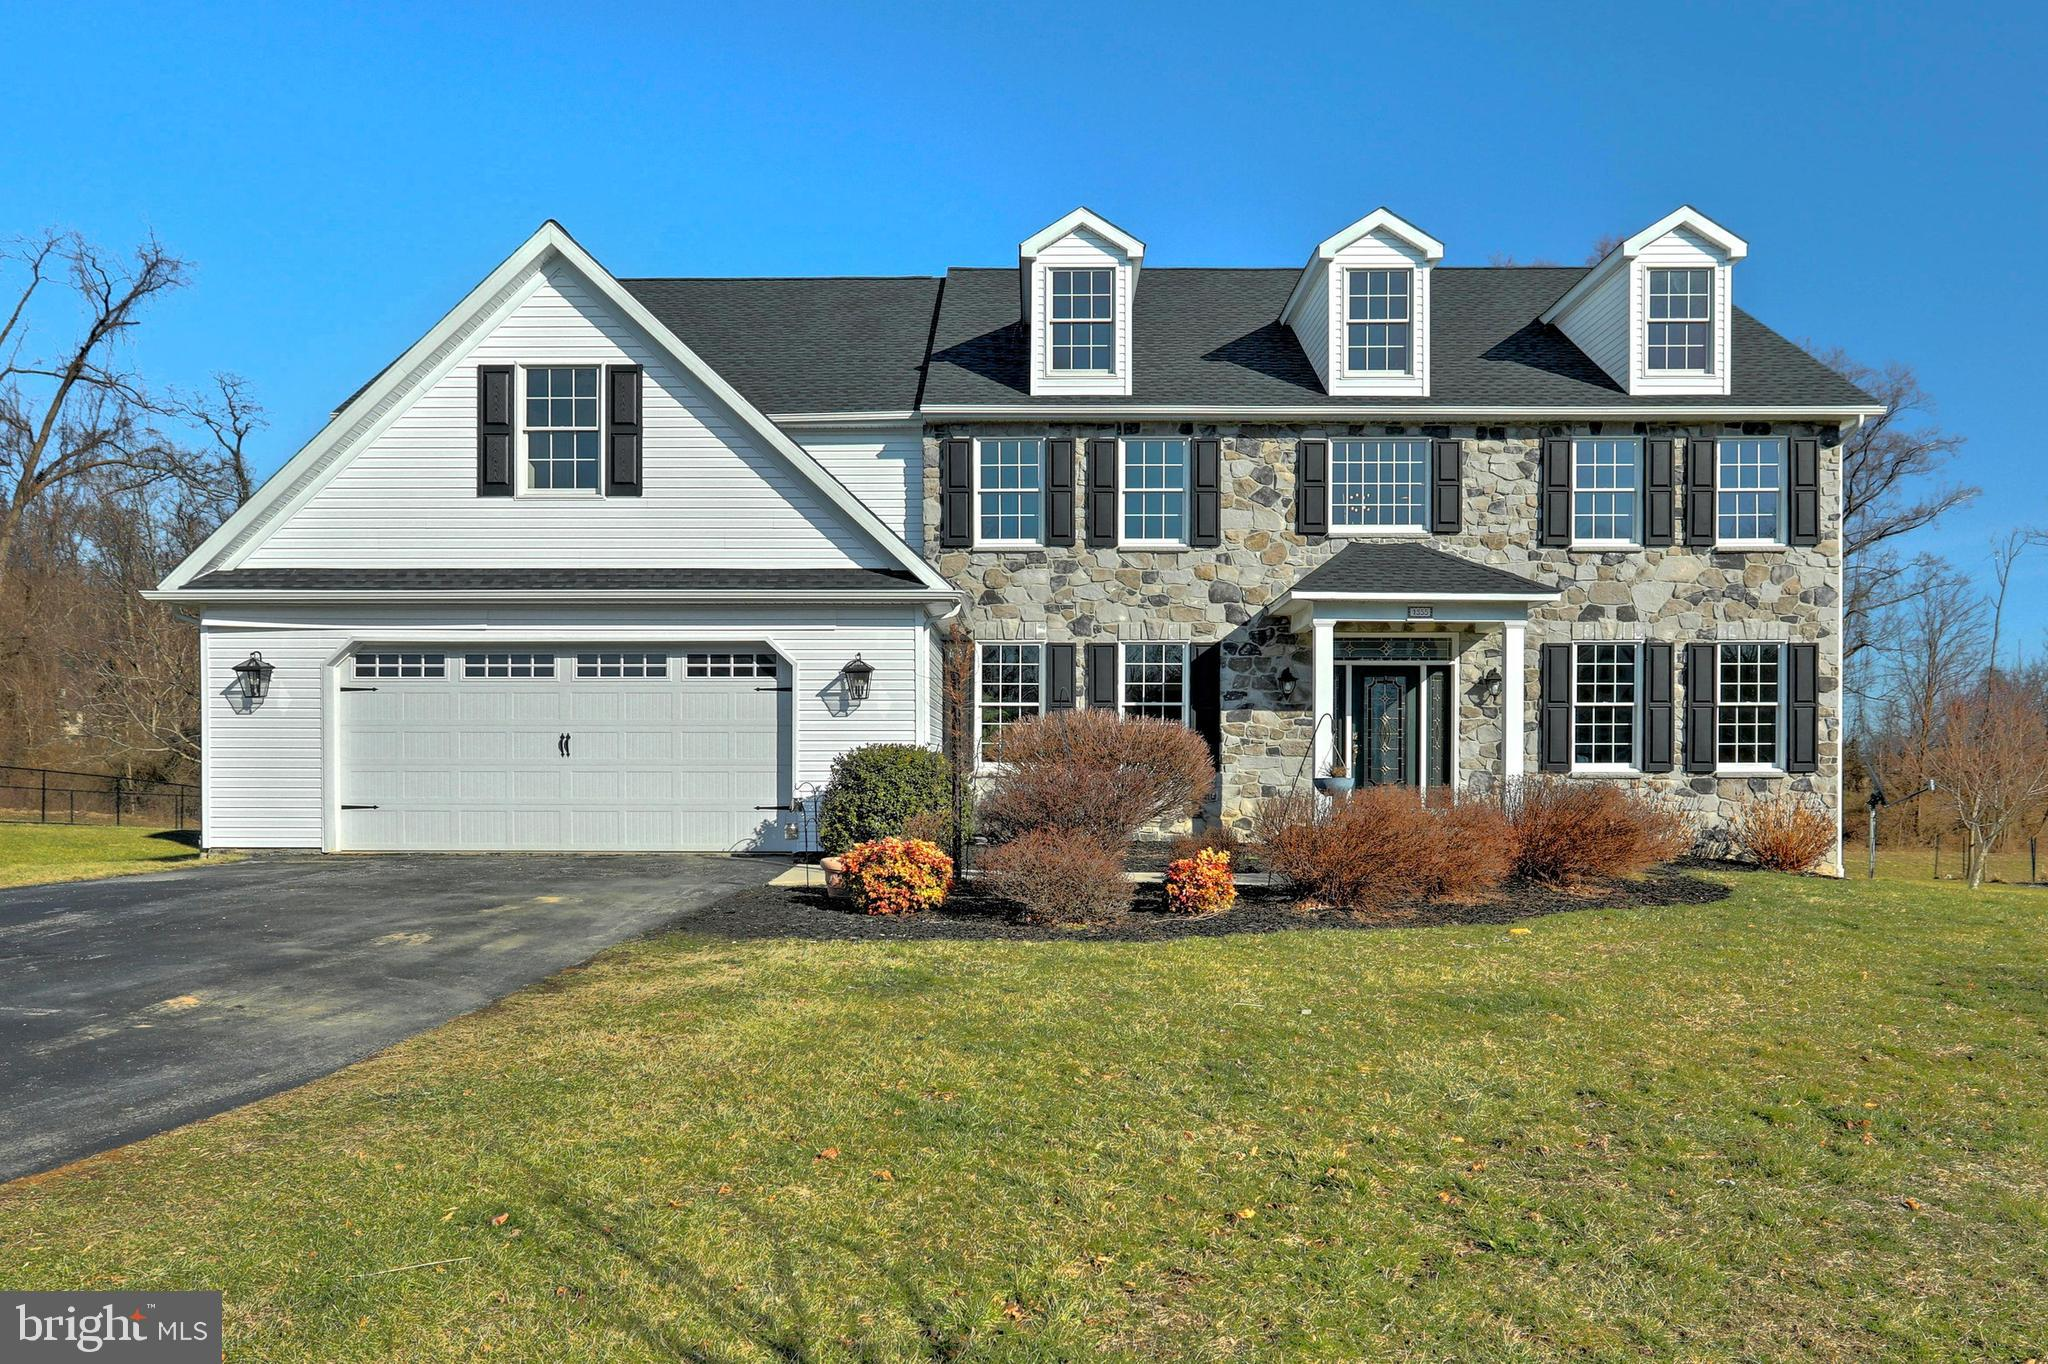 1355 WINTERBERRY DRIVE, YORK, PA 17406